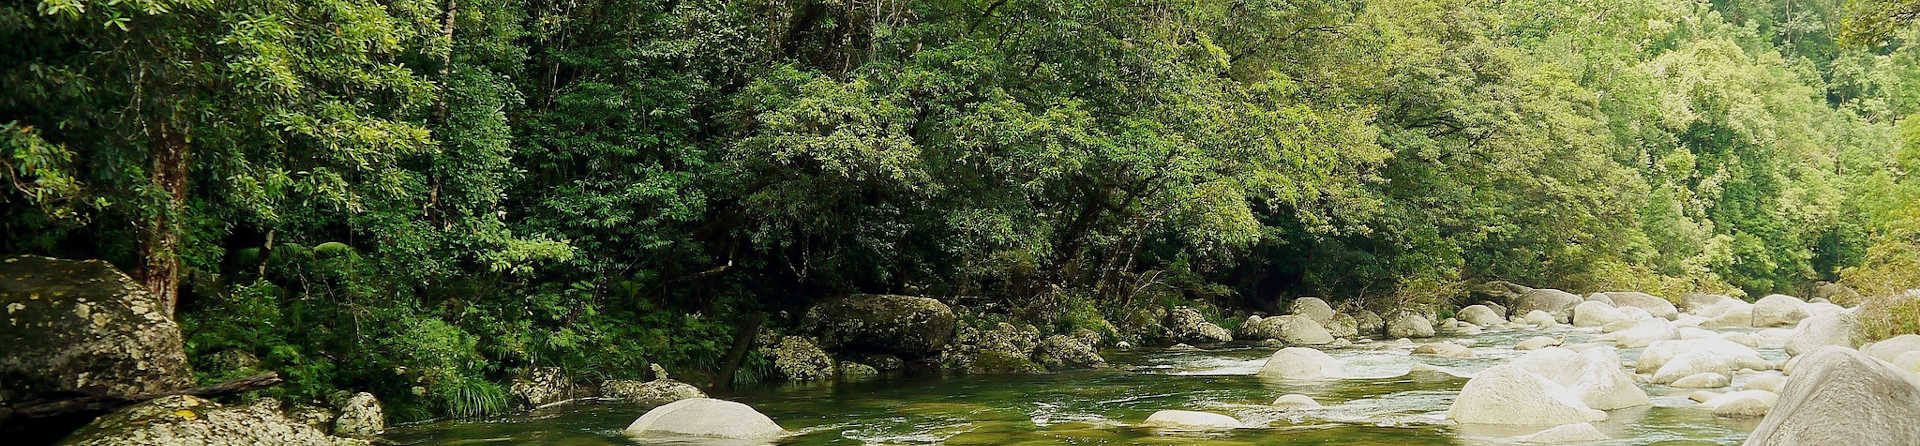 How do you get to the Daintree rainforest?